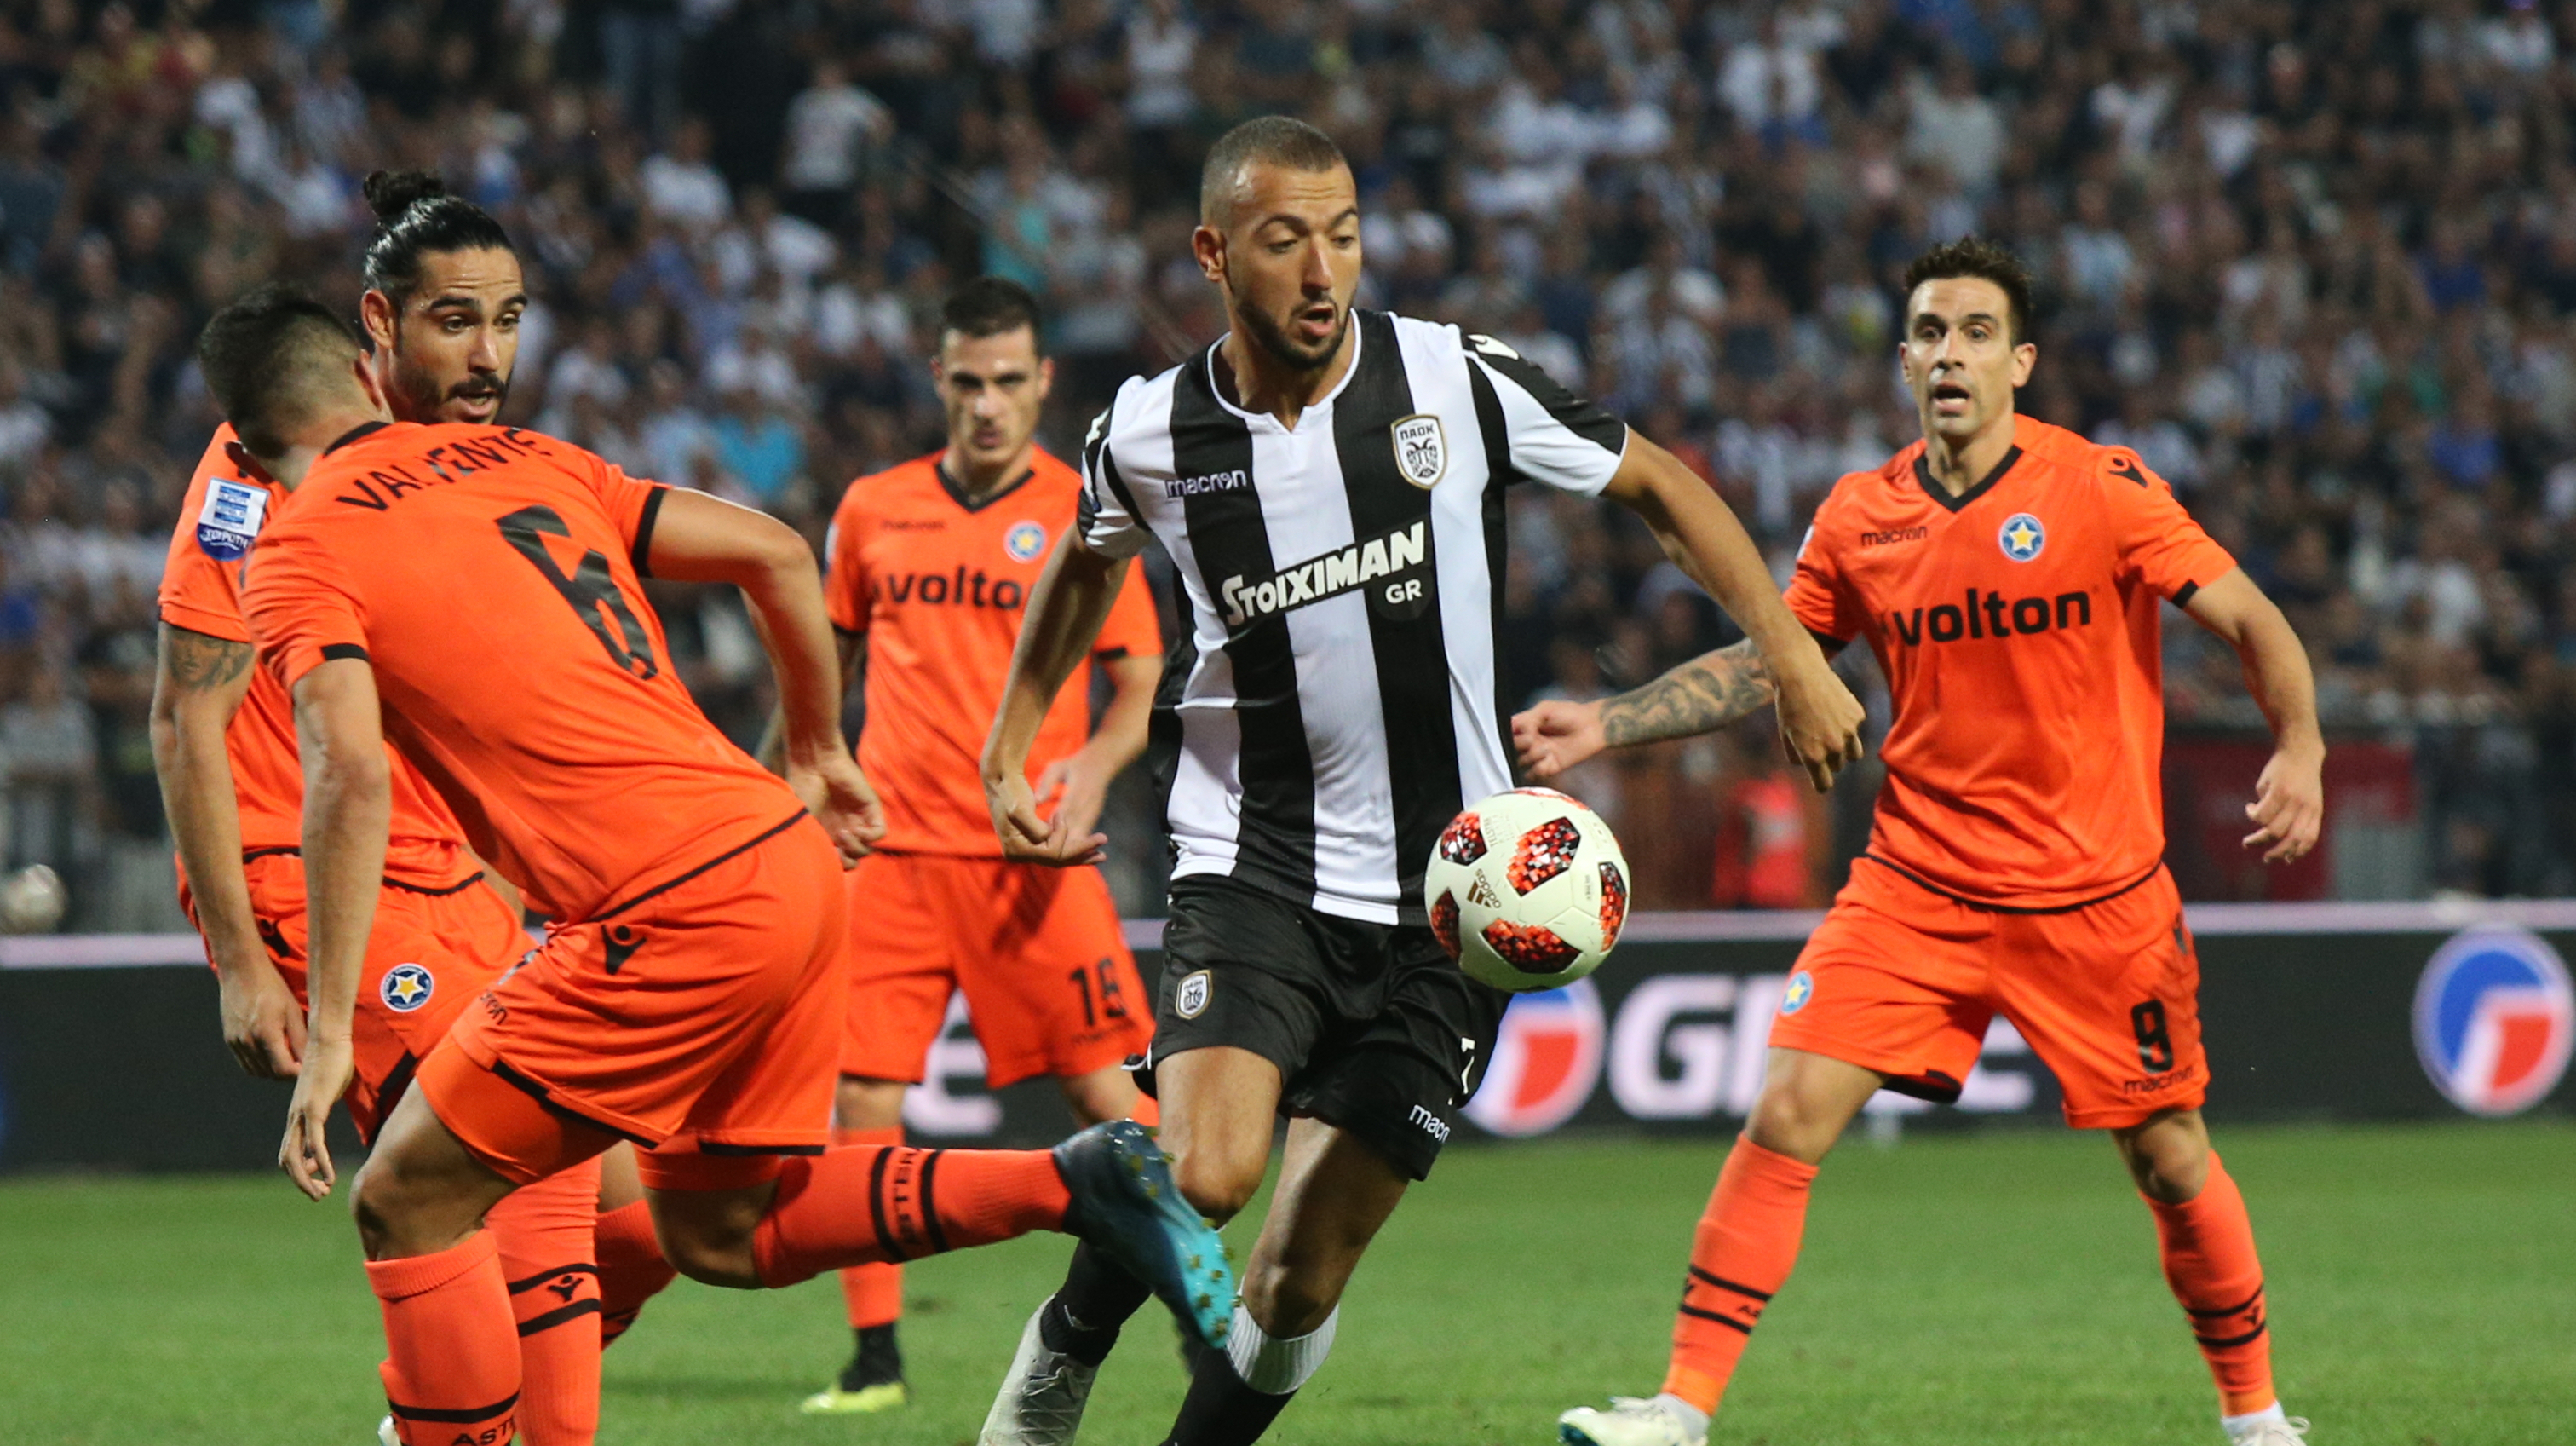 PAOK – Asteras Tripolis: Highlights